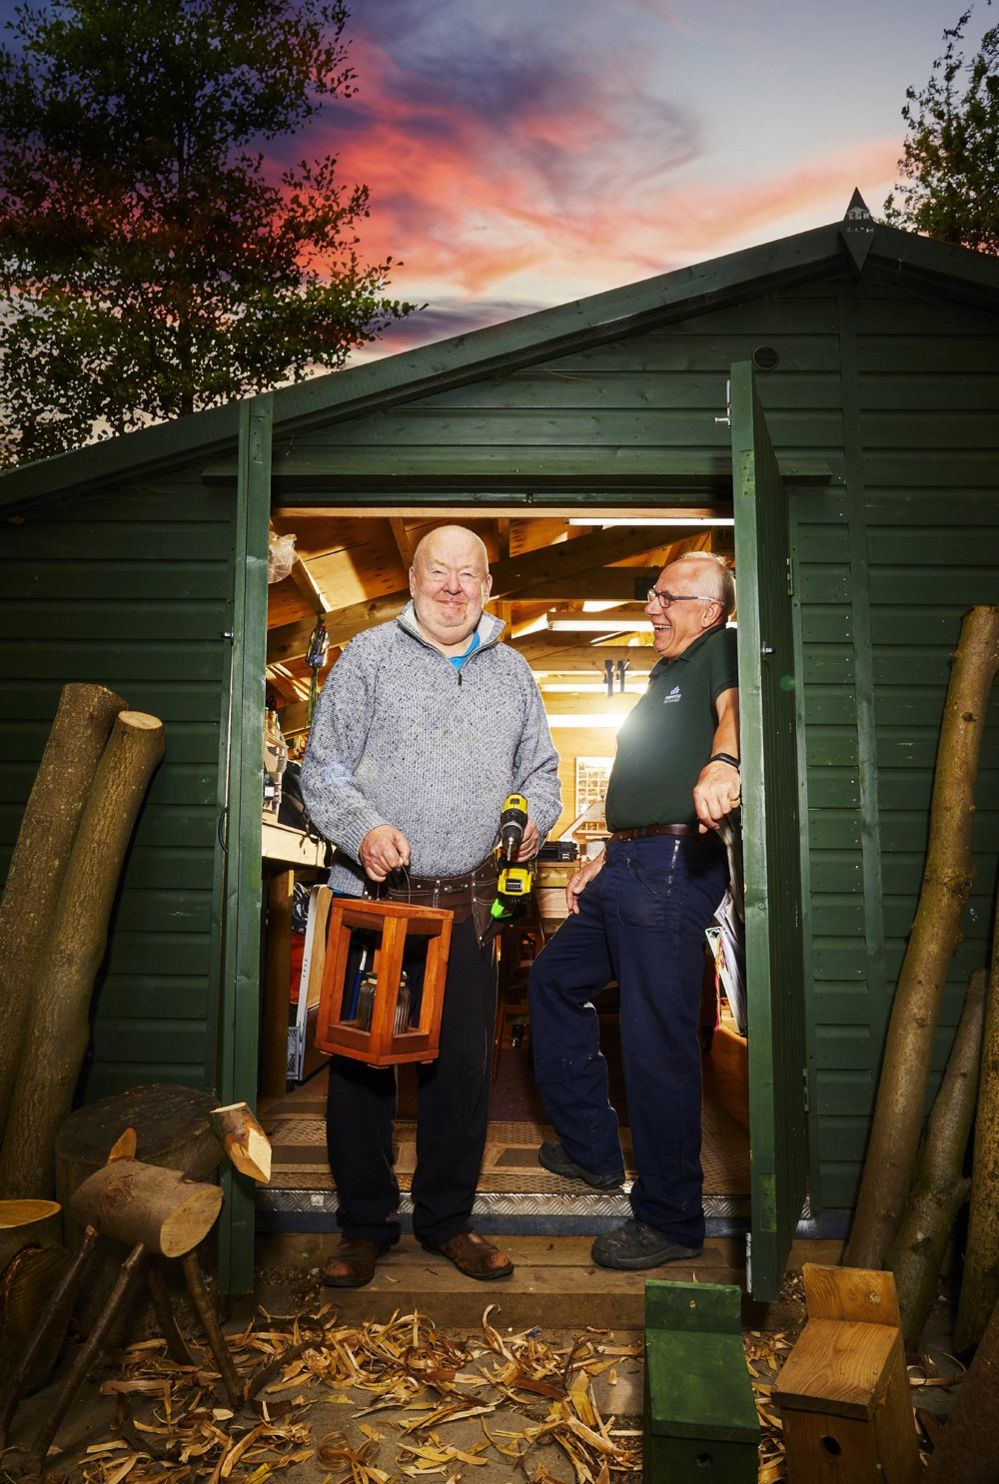 Roger Beament and Timothy Tempest, Sherwood Sheds Project, Tunbridge Wells, Kent